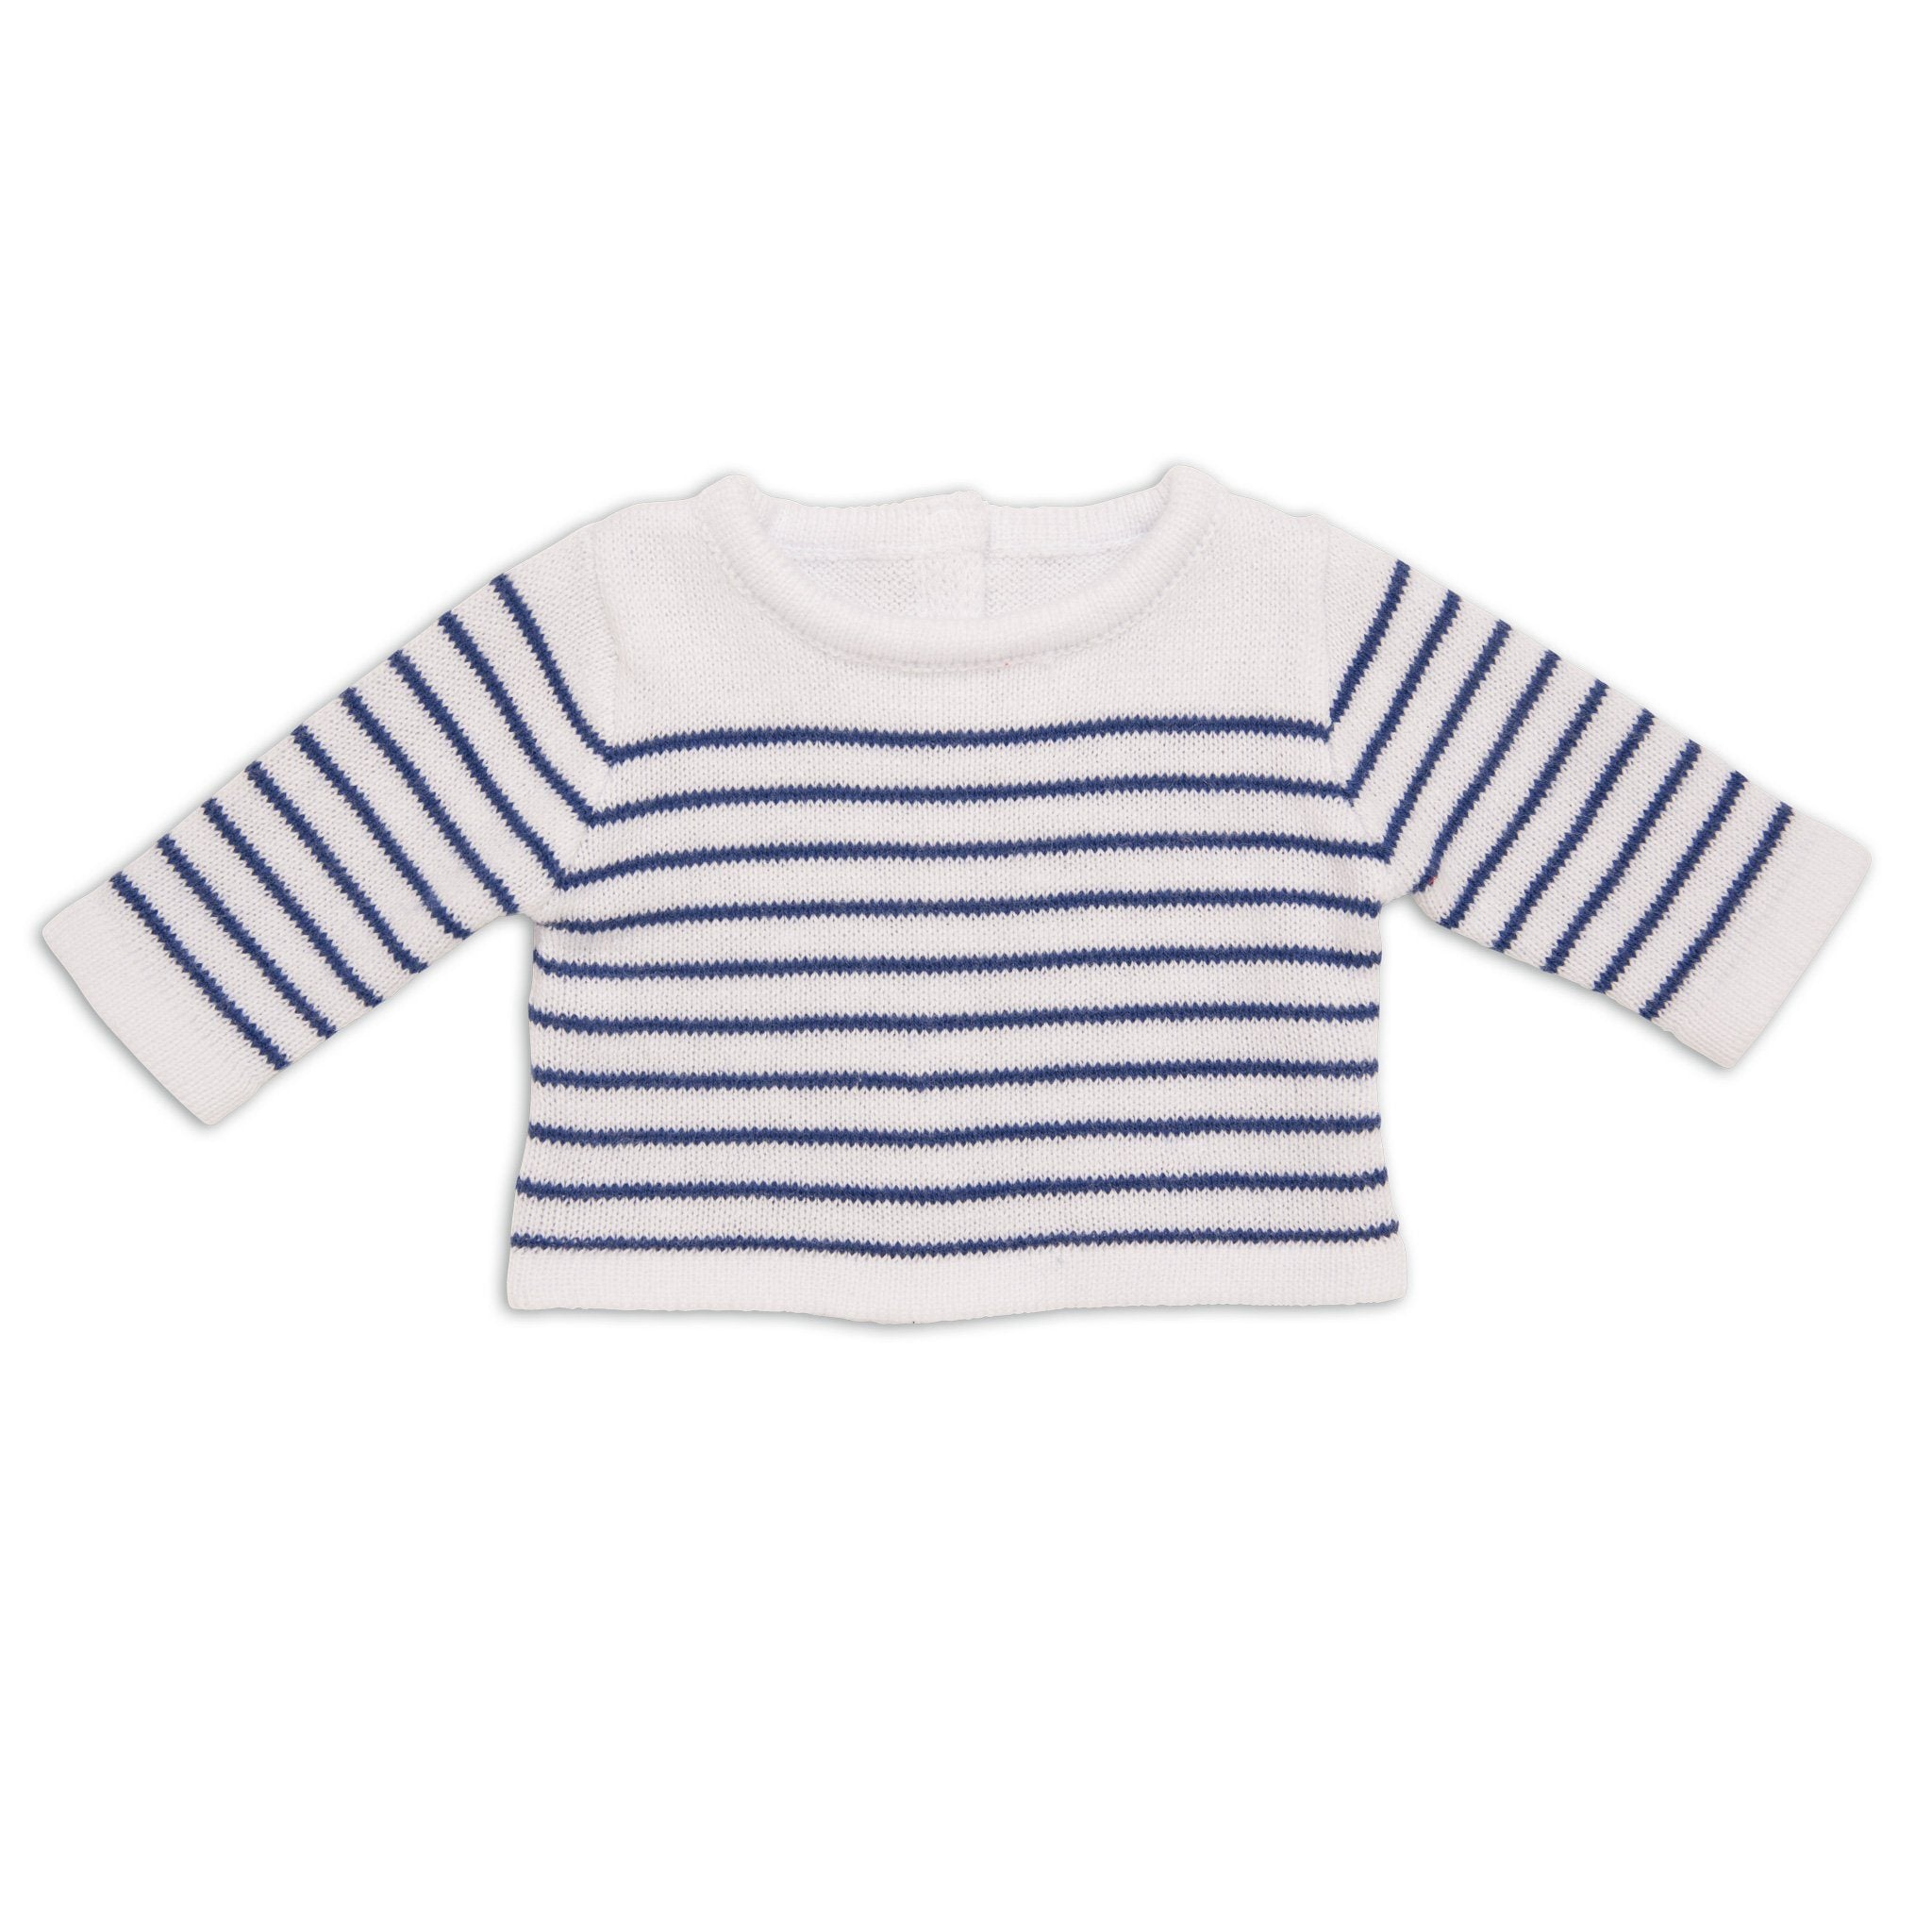 white sweater with navy blue stripes creates a nautical summer look for 18 inch dolls.